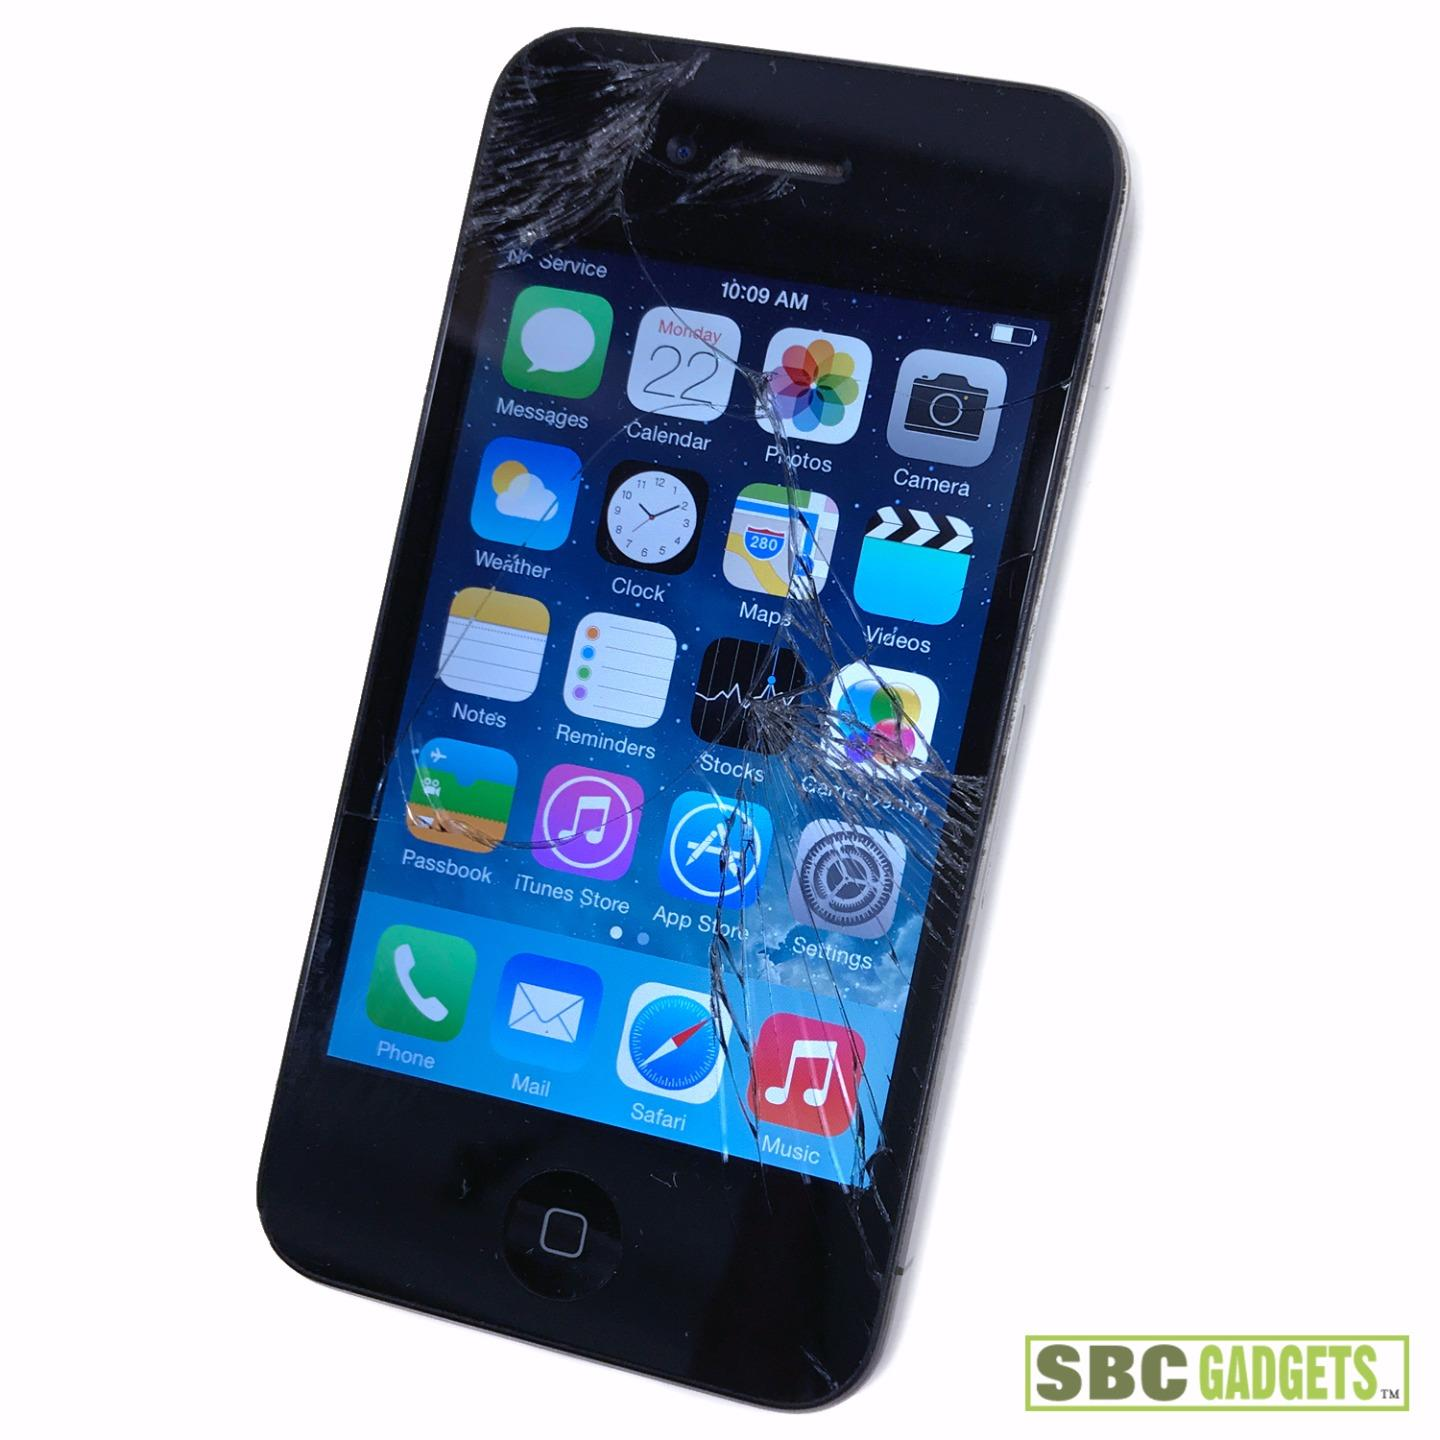 iphone 4 8gb apple iphone 4 8gb black at amp t model md127ll a 10834